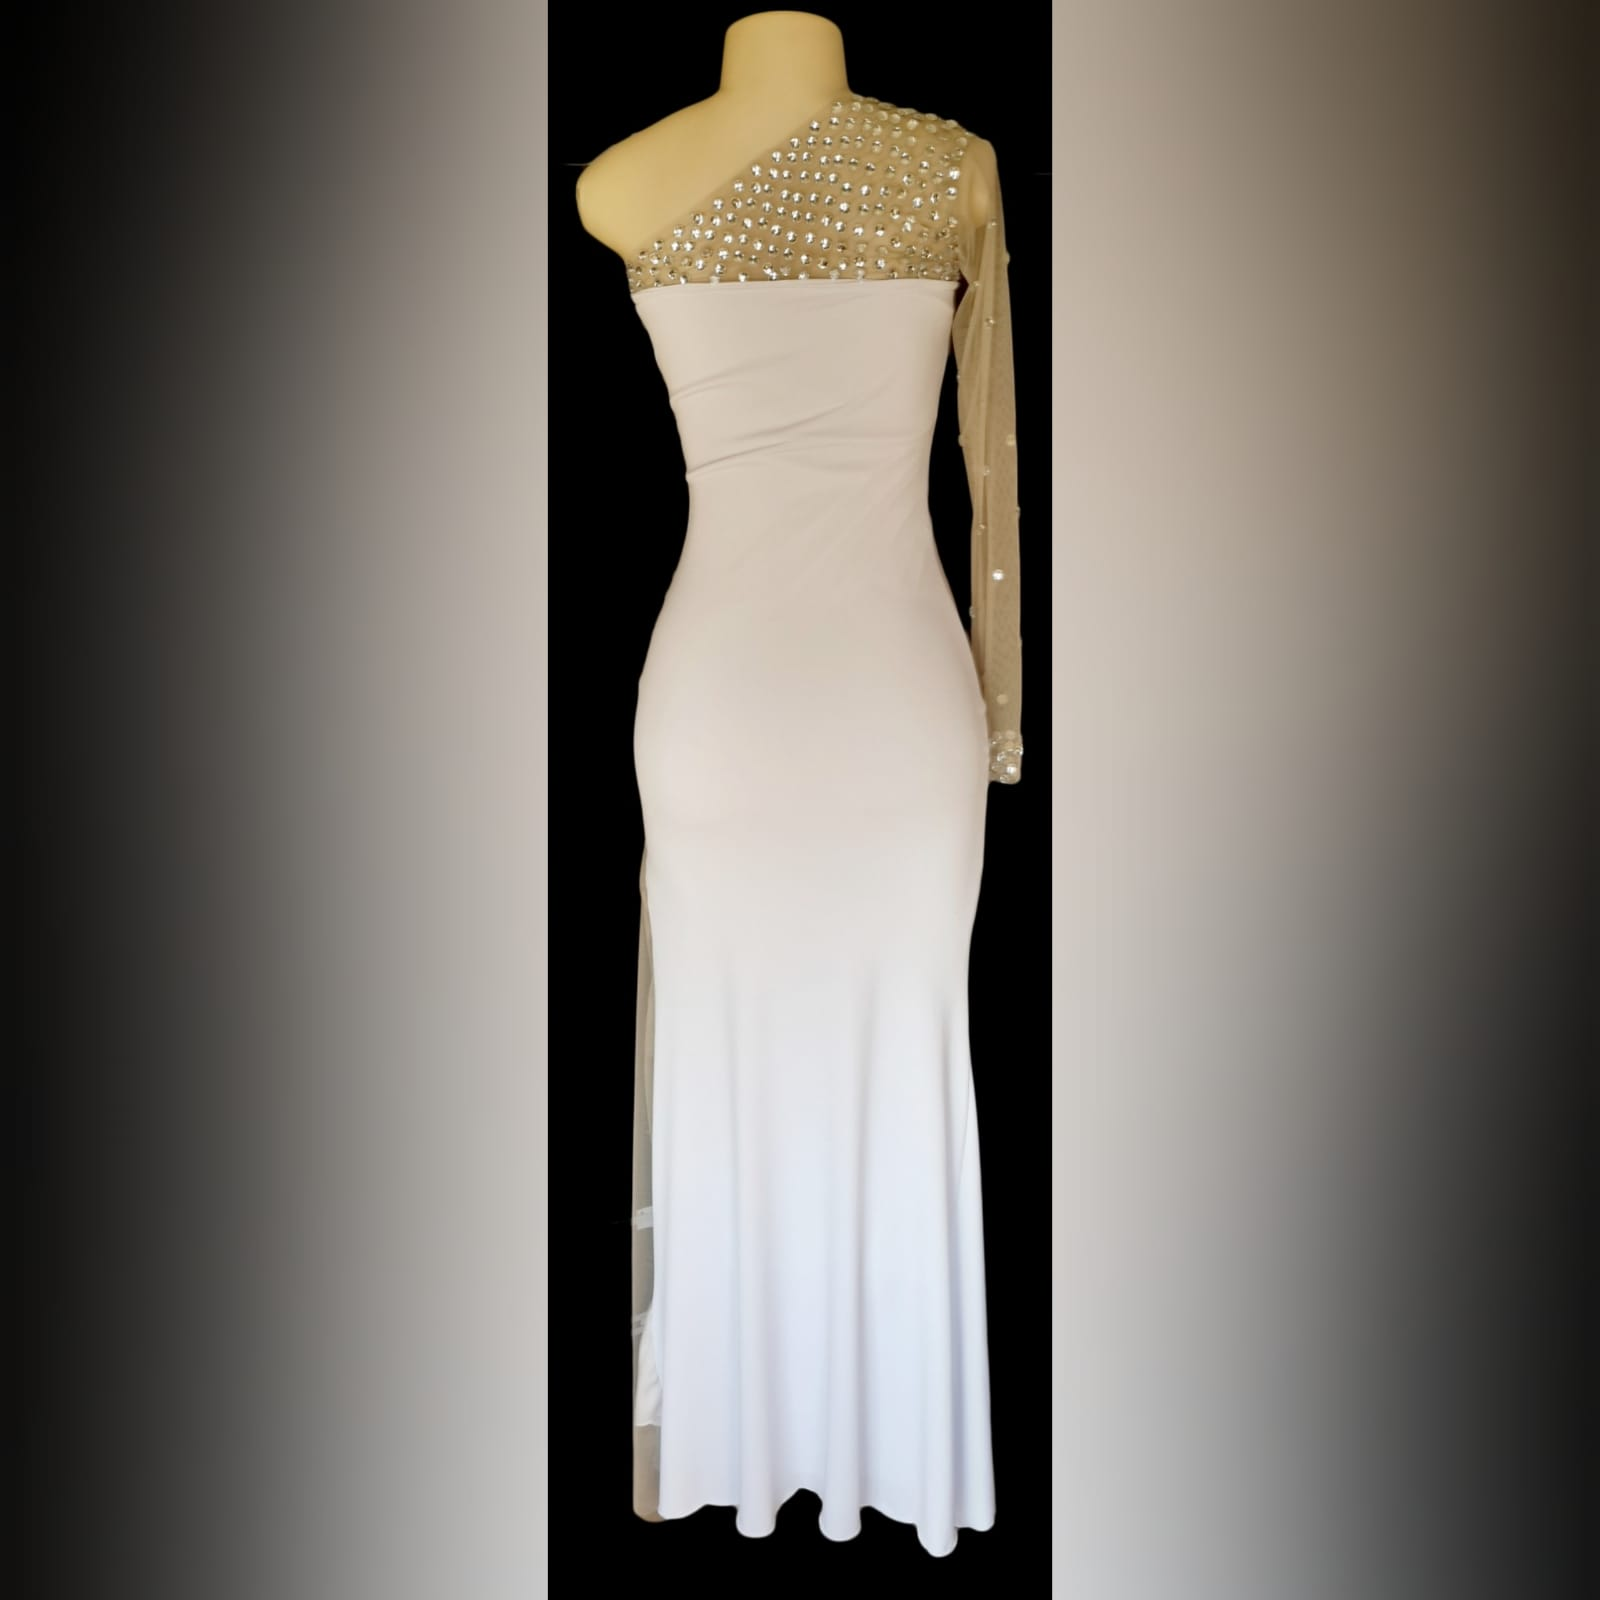 White and silver long fitted new years party dress 7 white and silver long fitted new years party dress. With an angled neckline and one sleeve detailed with silver beads. With a sheer side panel with beads creating a slit.